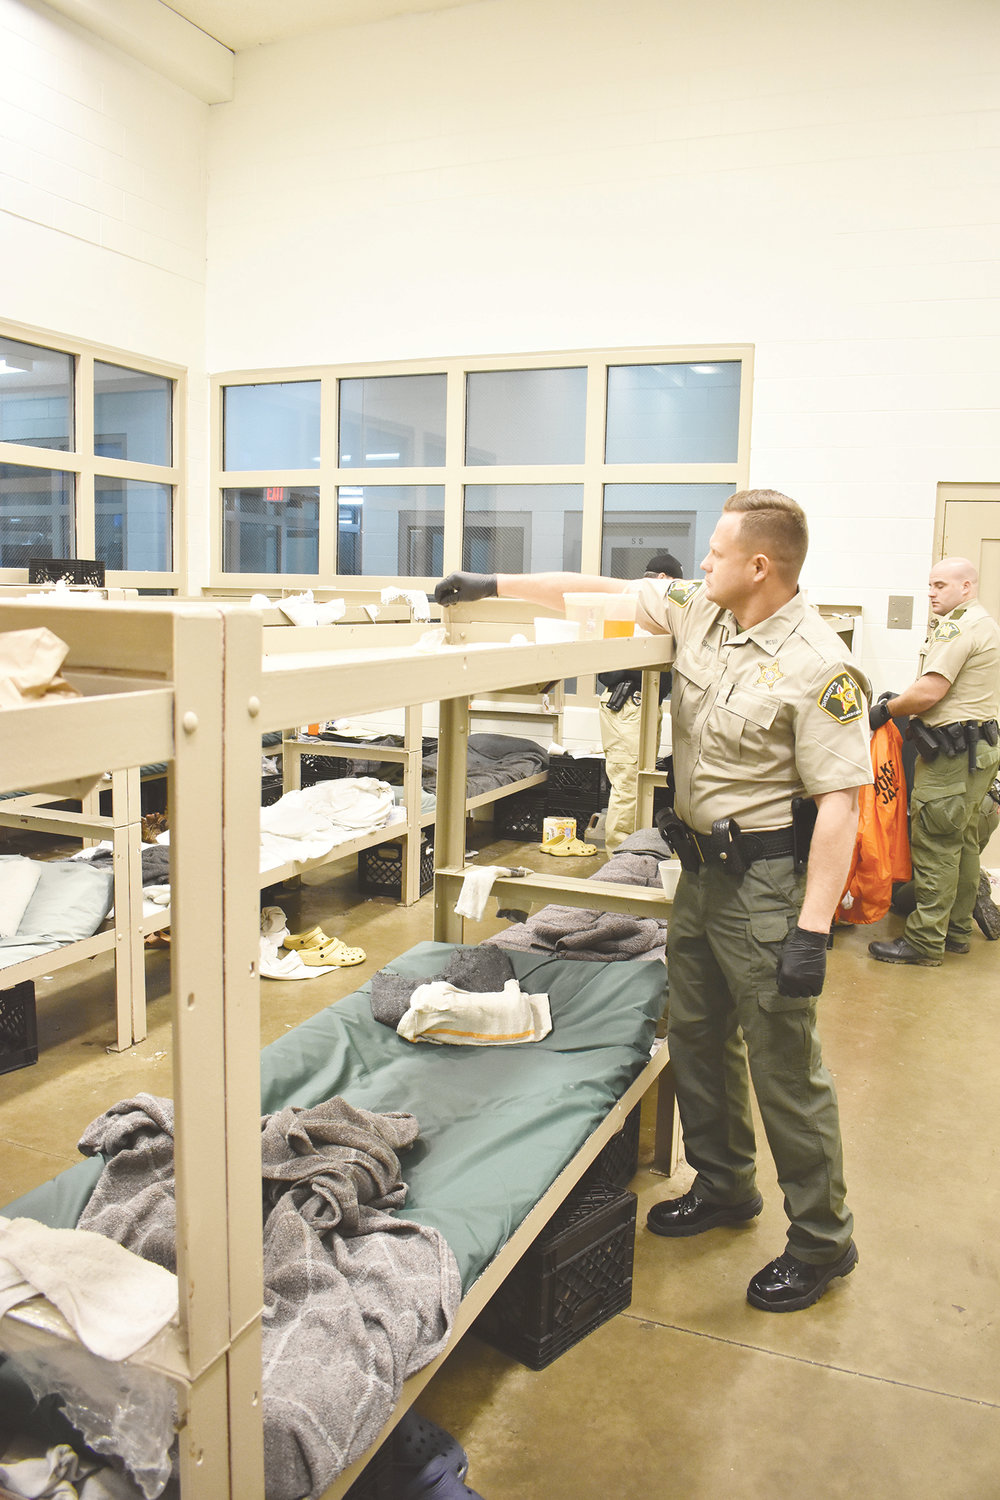 Sheriff Nick Smith reaches over to look for items in the bunks of the trustee area of the Walker County Jail during a sweep held shortly after he took office in January.